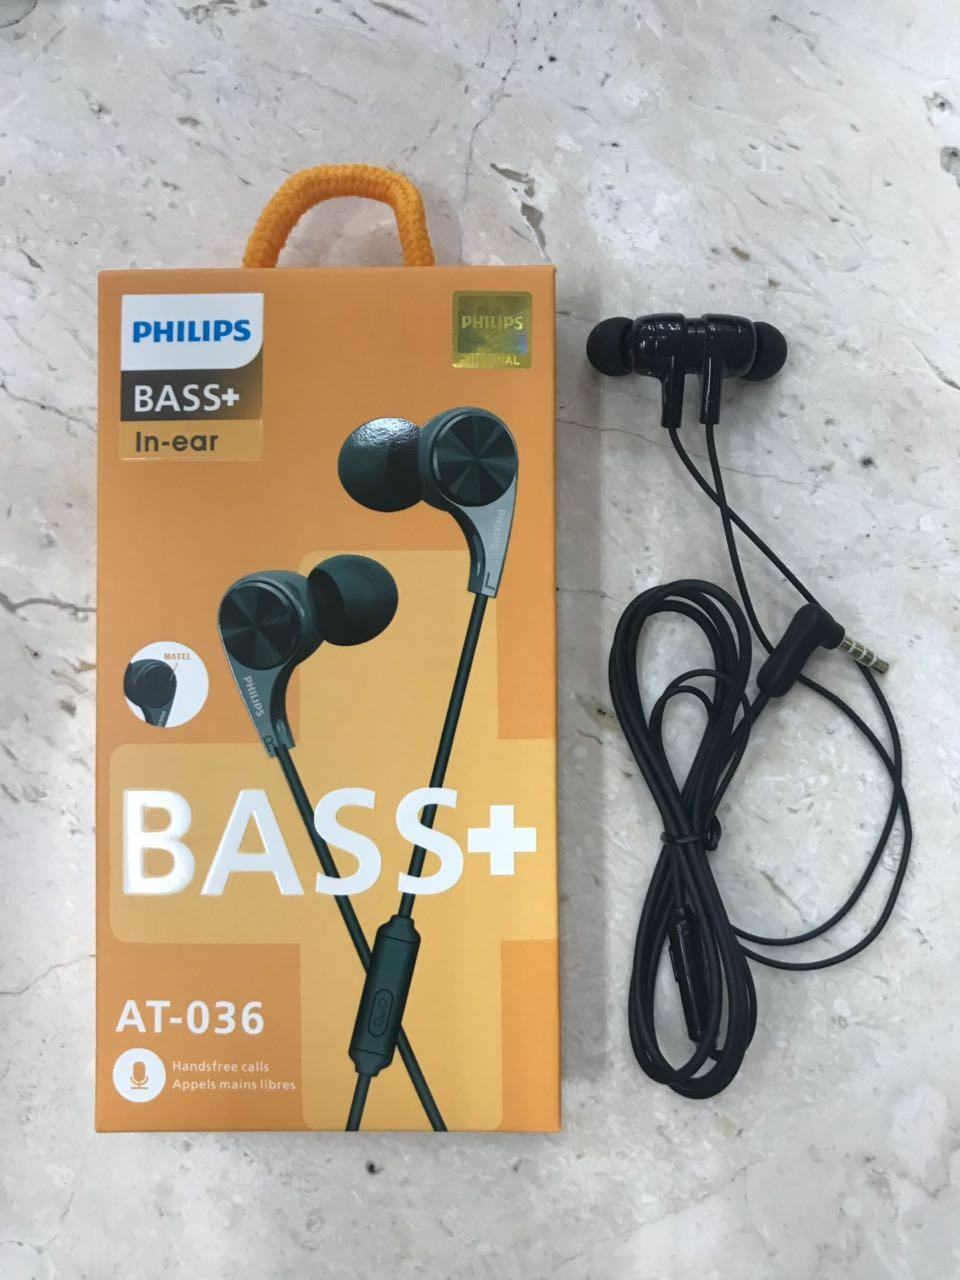 Handsfree PHILIPS magnet AT-036